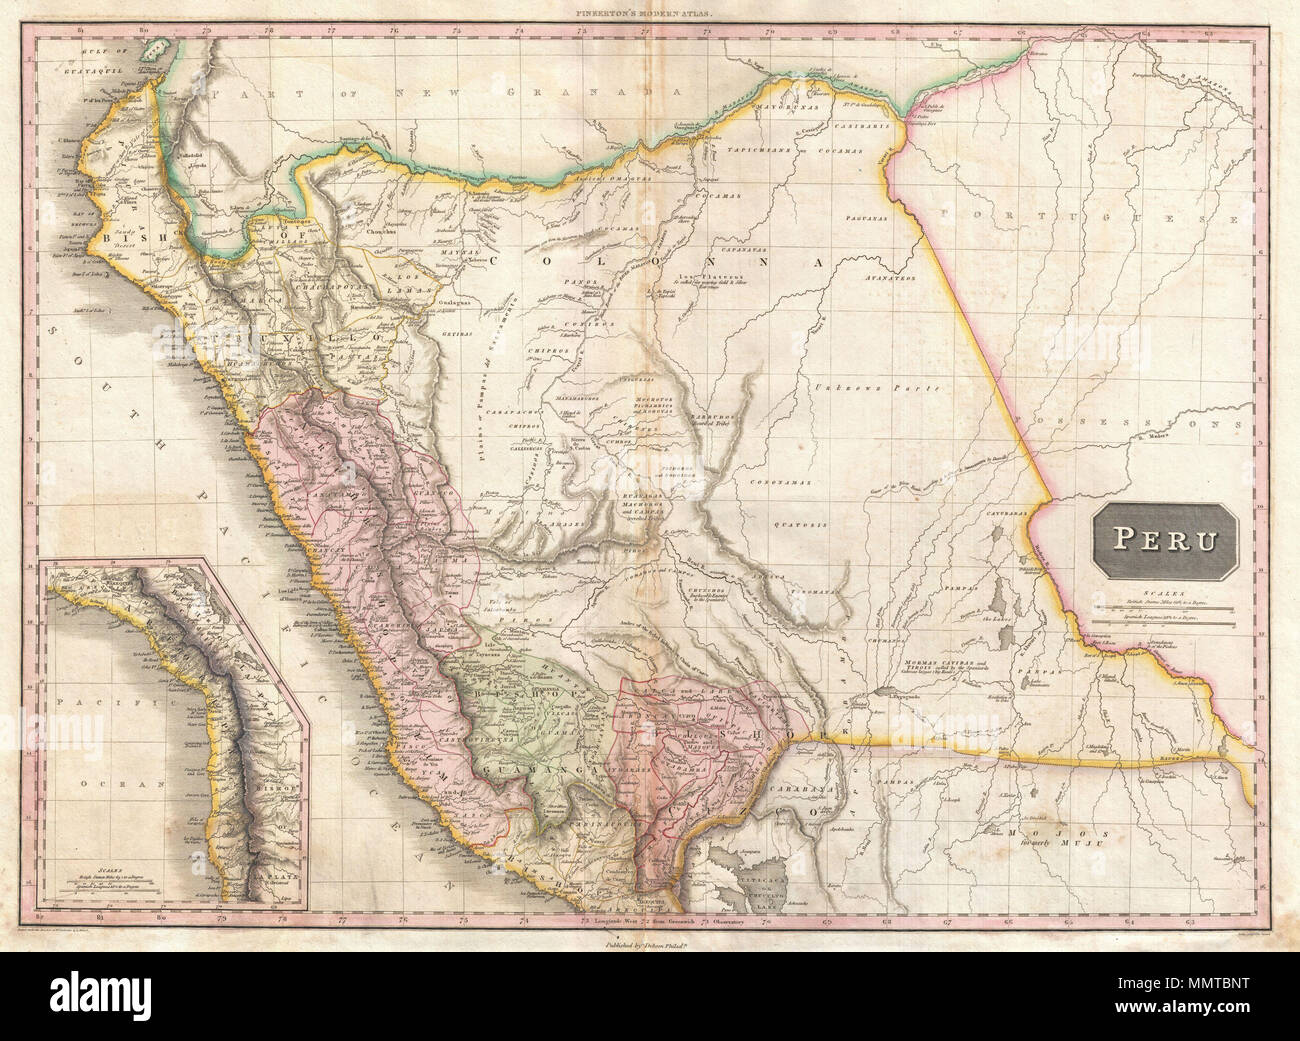 Lake Titicaca On South America Map.English This Is John Pinkerton S Stunning 1818 Map Of Peru Covers